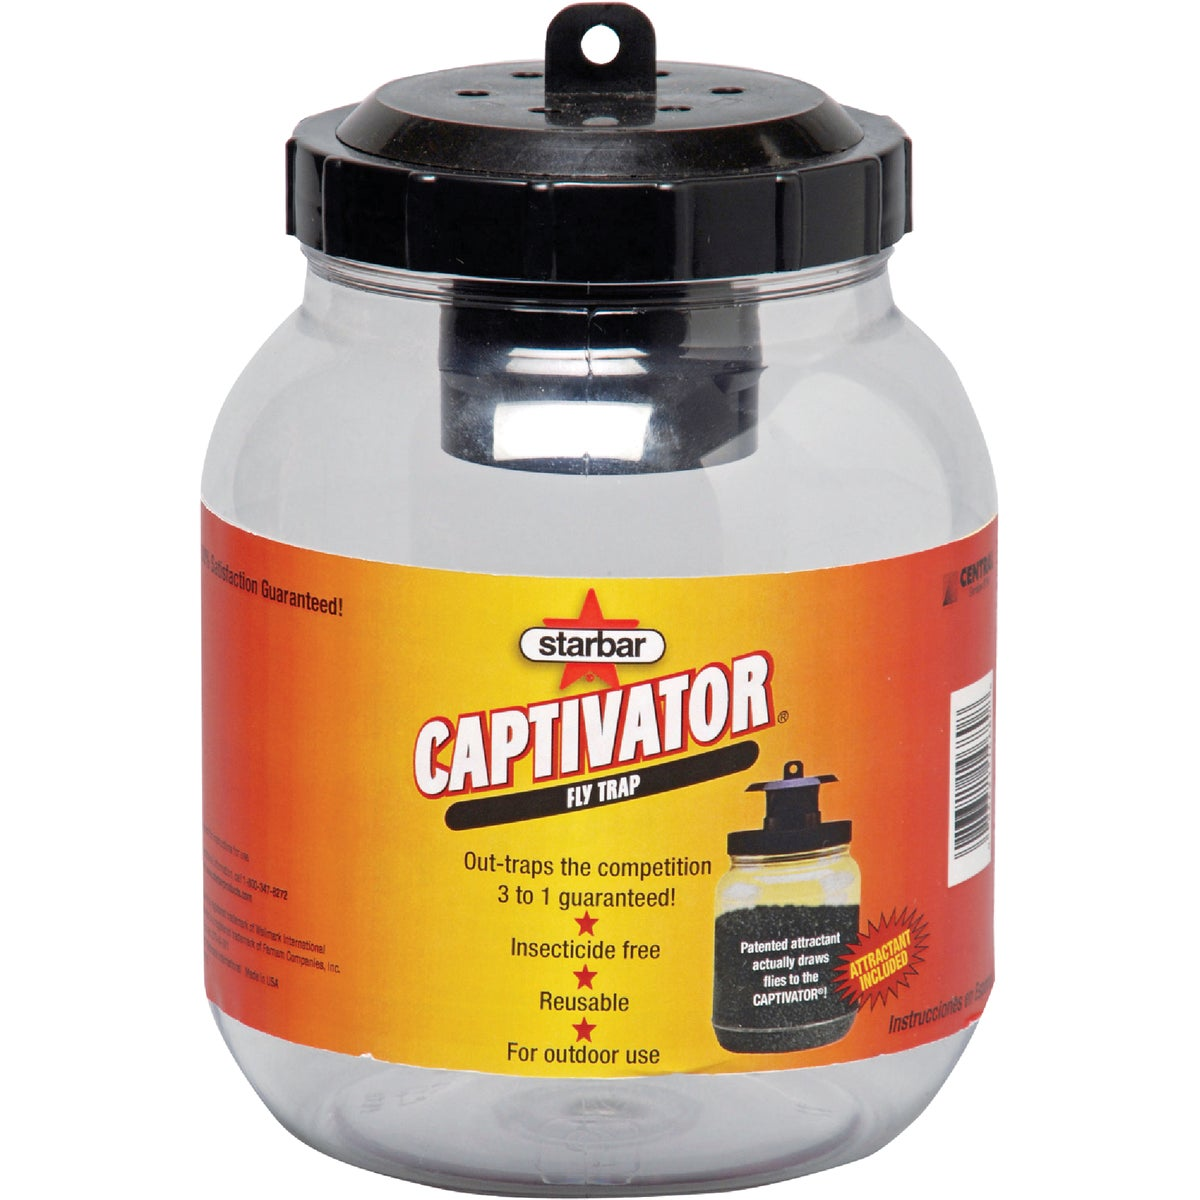 CAPTIVATOR FLY TRAP - 14680 by Farnam Central Life